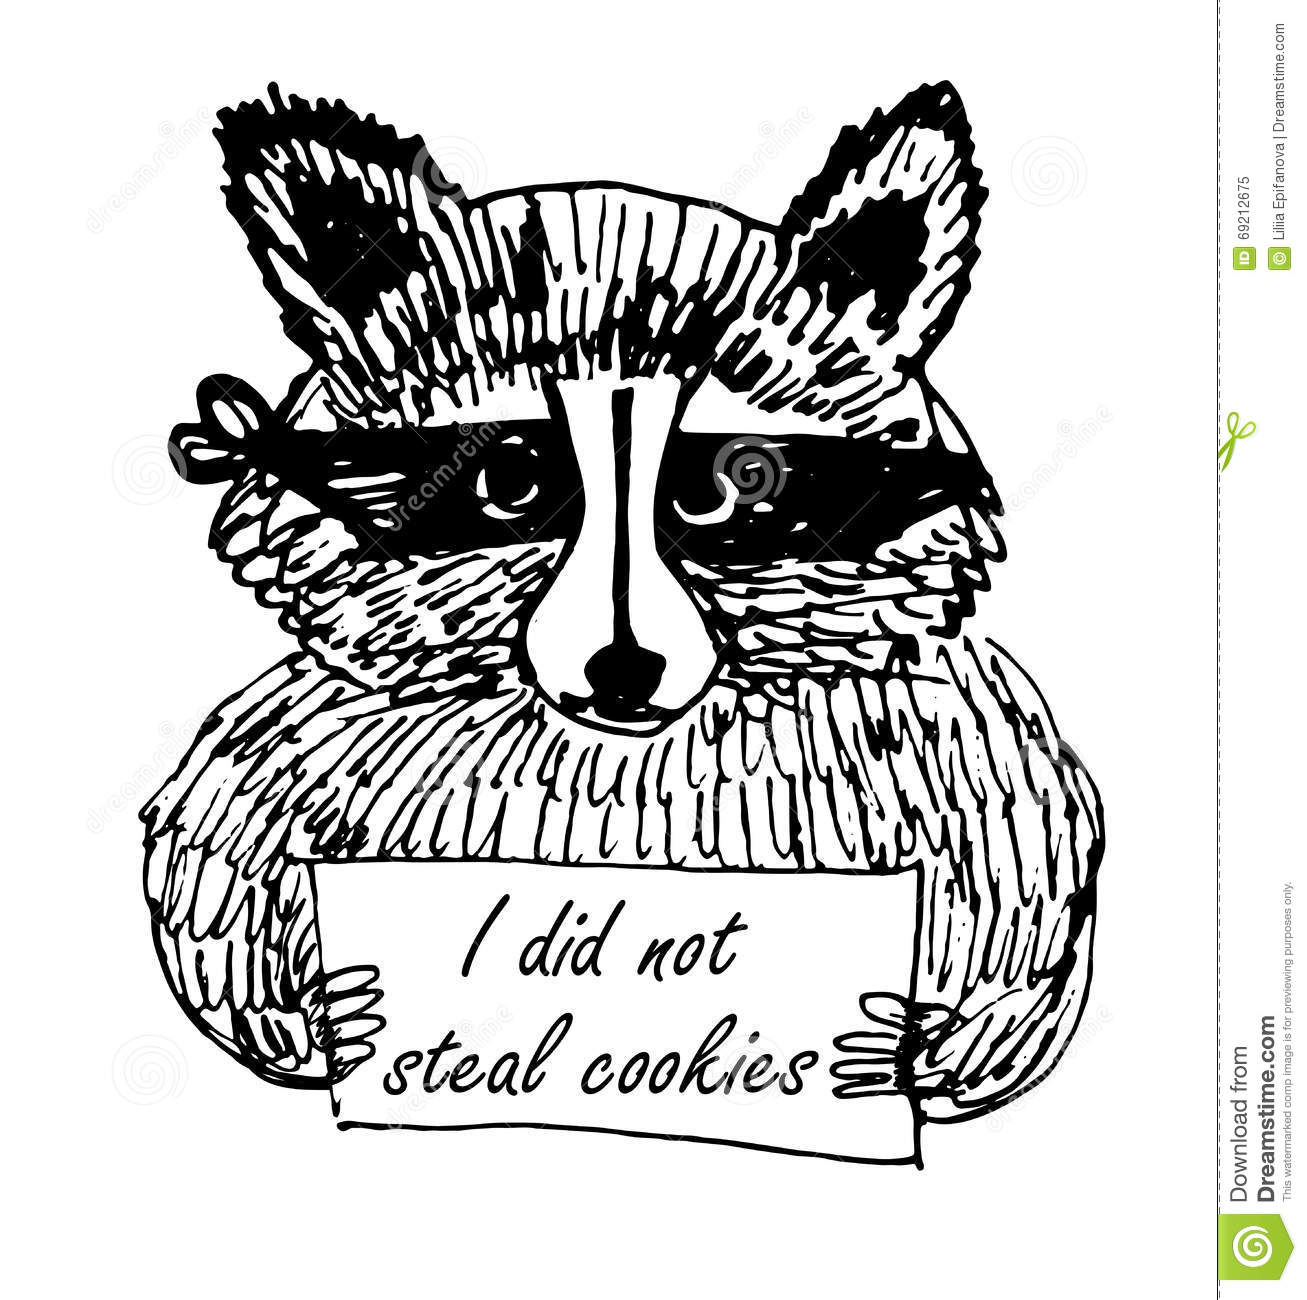 Funny Cartoon Picture Raccoon Thief Sketch Illustration